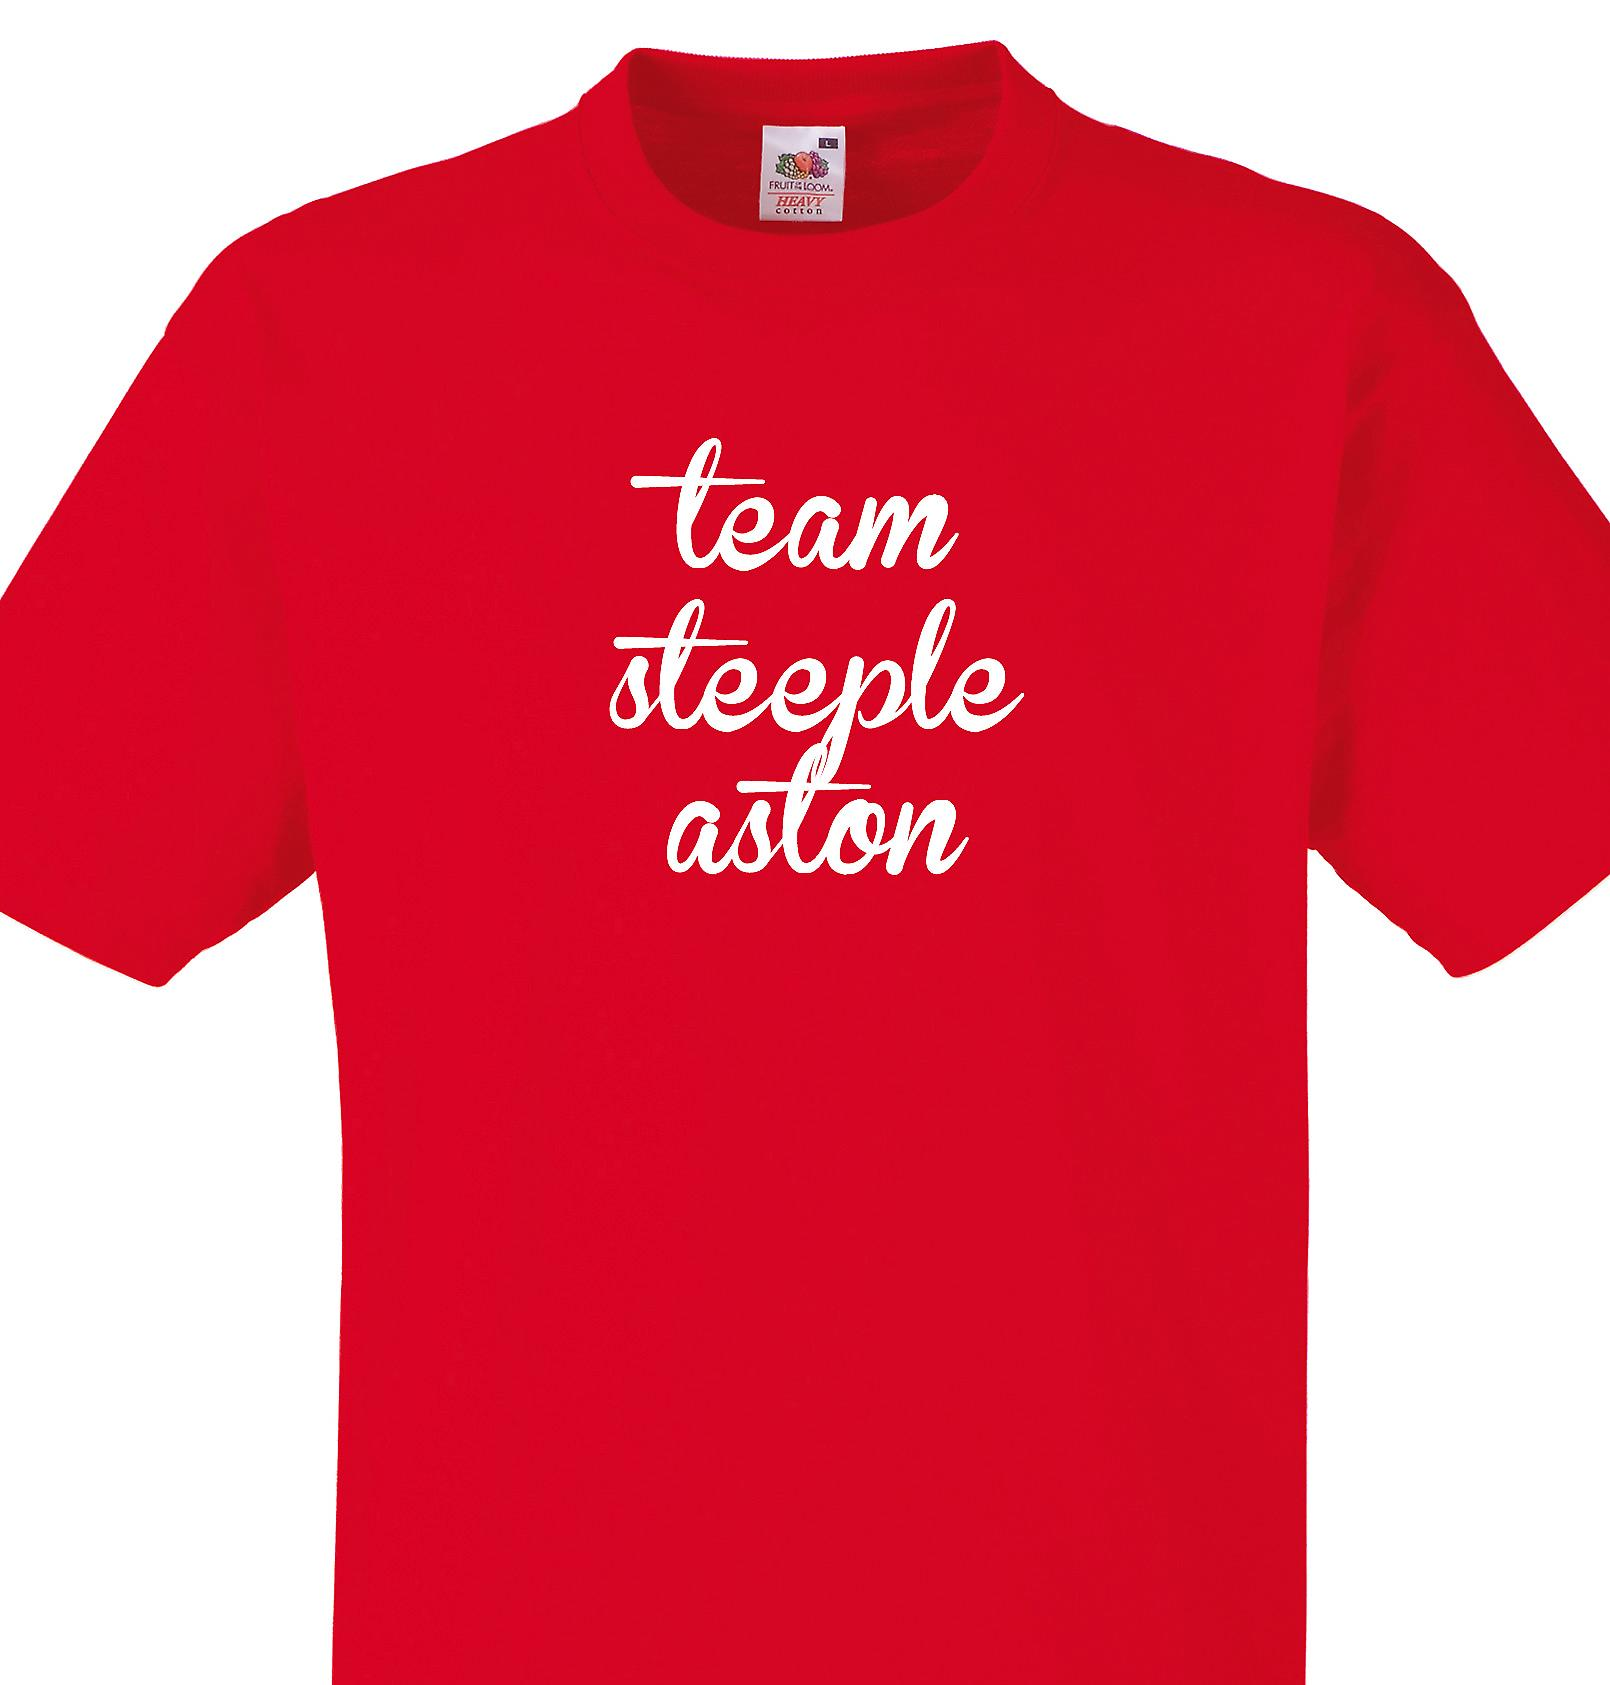 Team Steeple aston Red T shirt